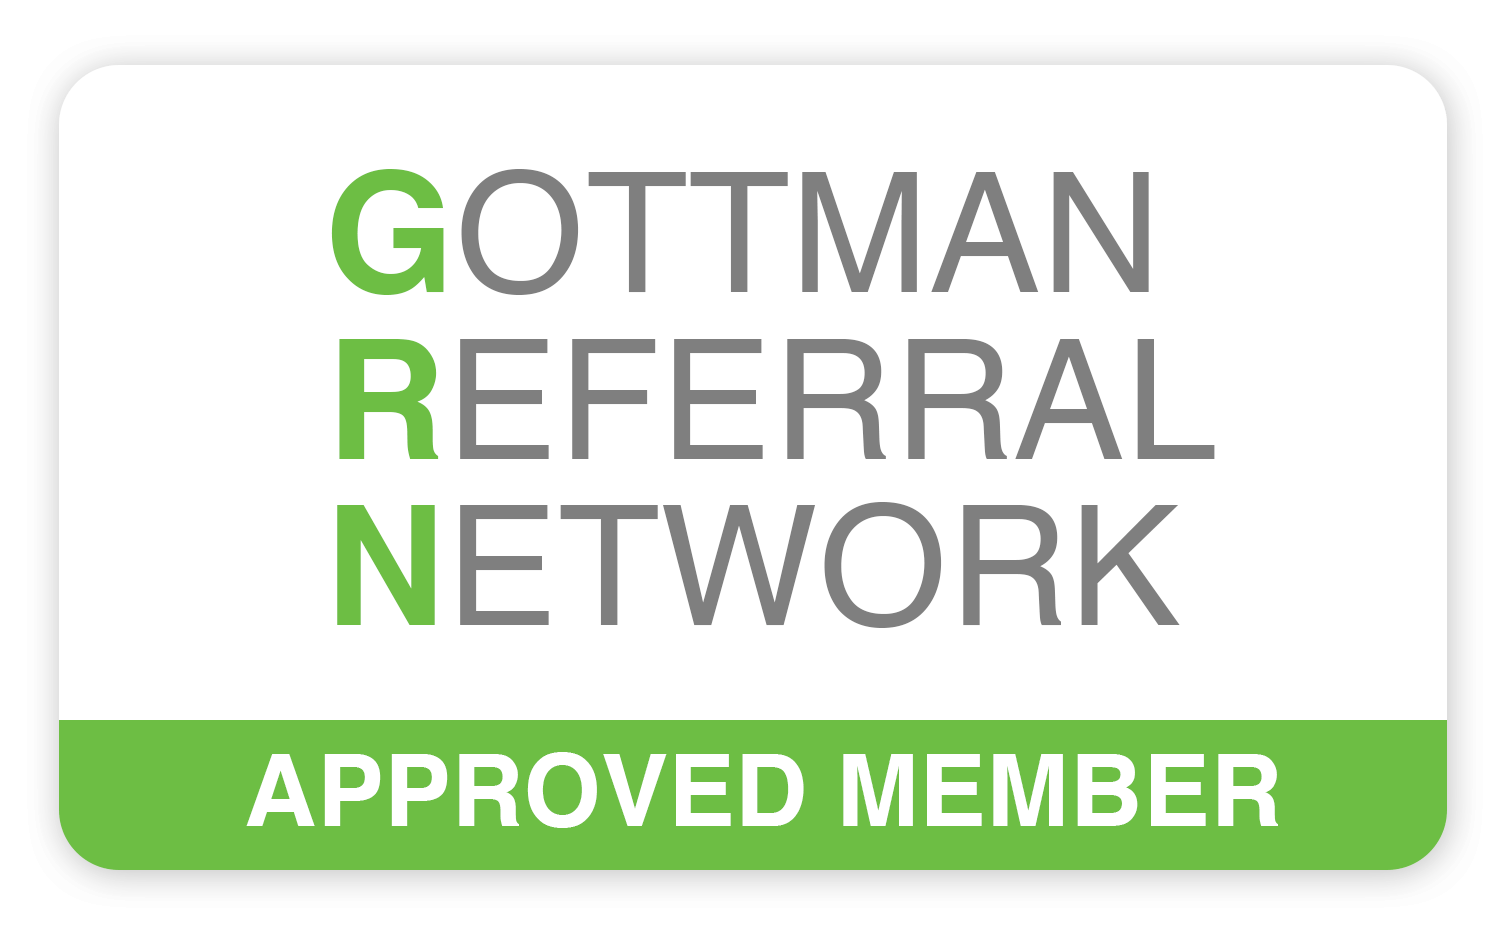 Rachel Hendron's profile on the Gottman Referral Network